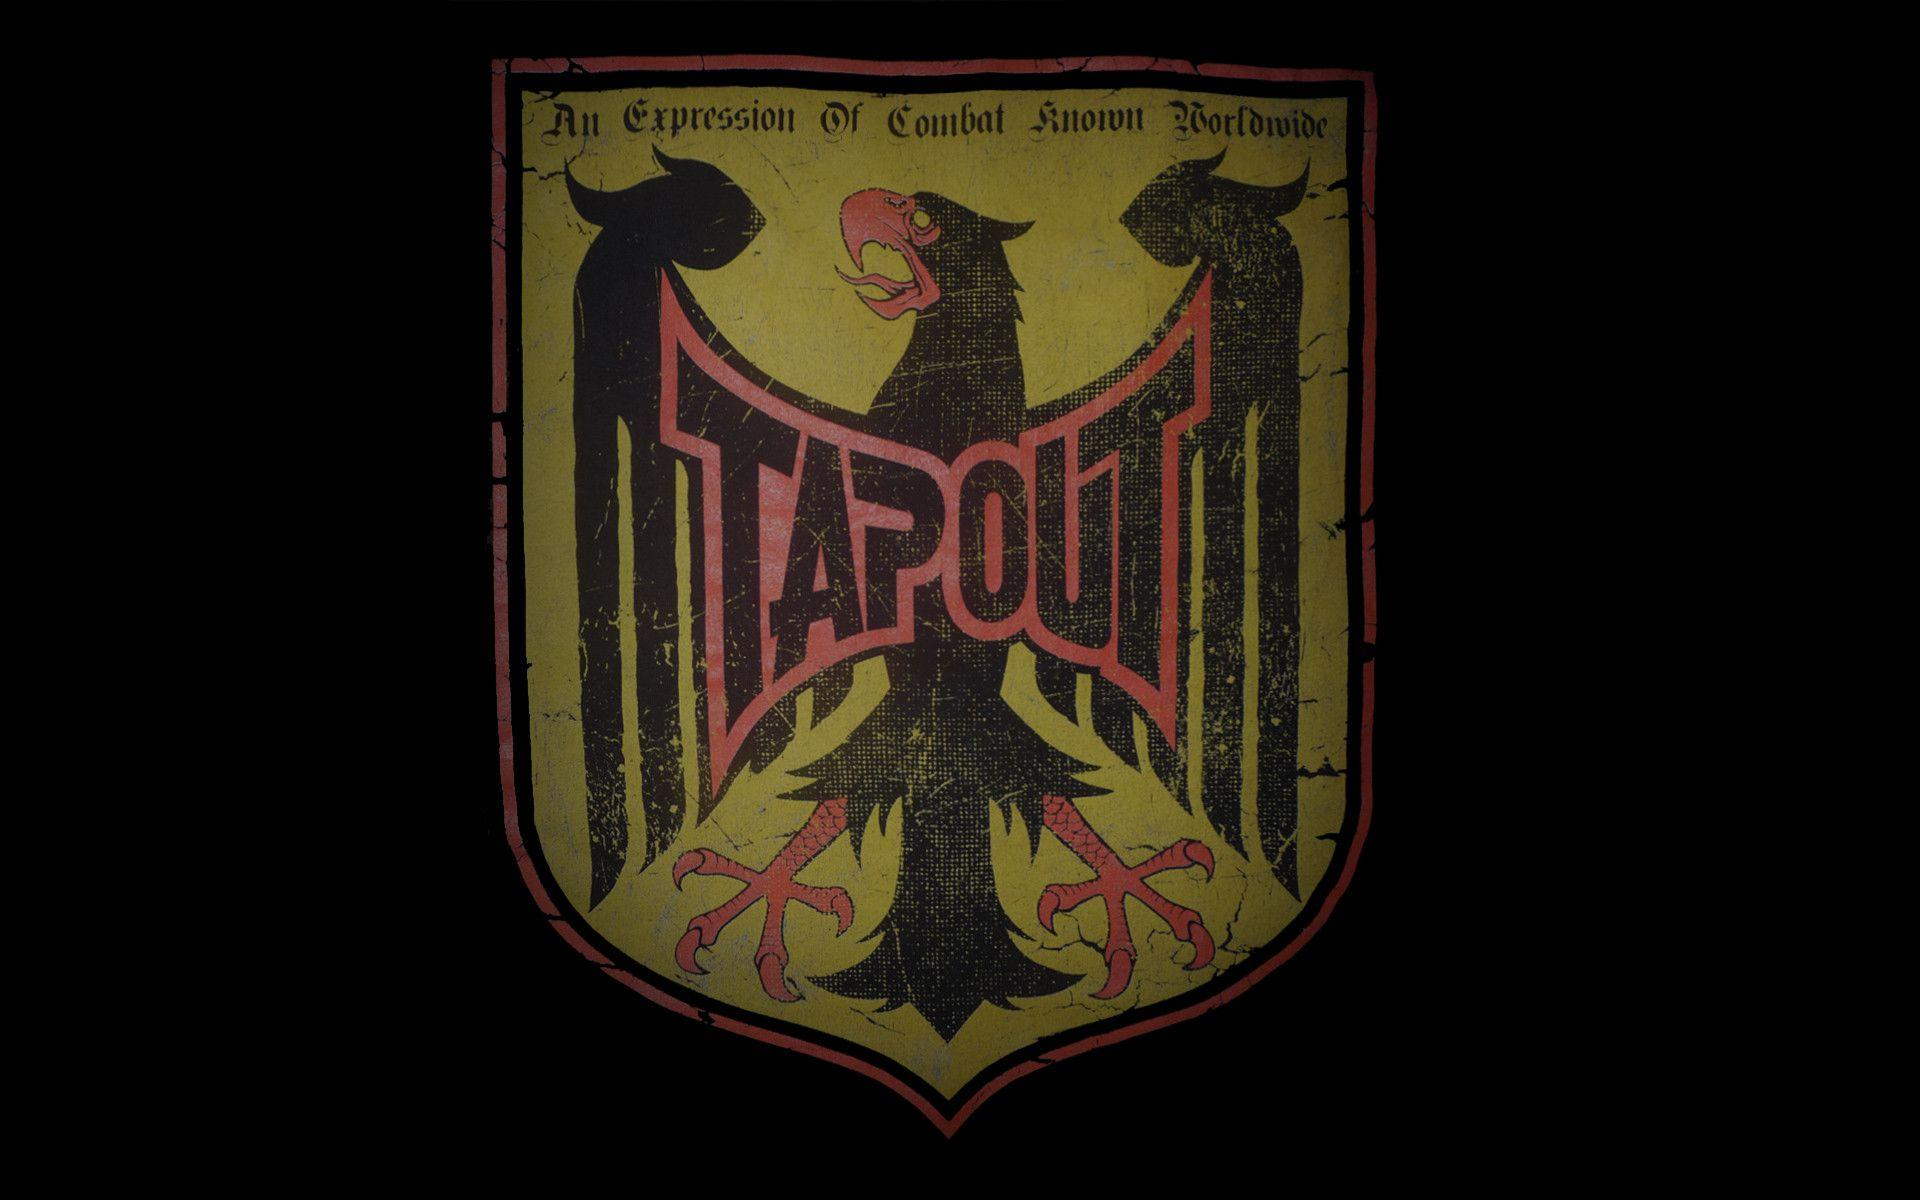 tapout wallpaper for facebook - photo #20